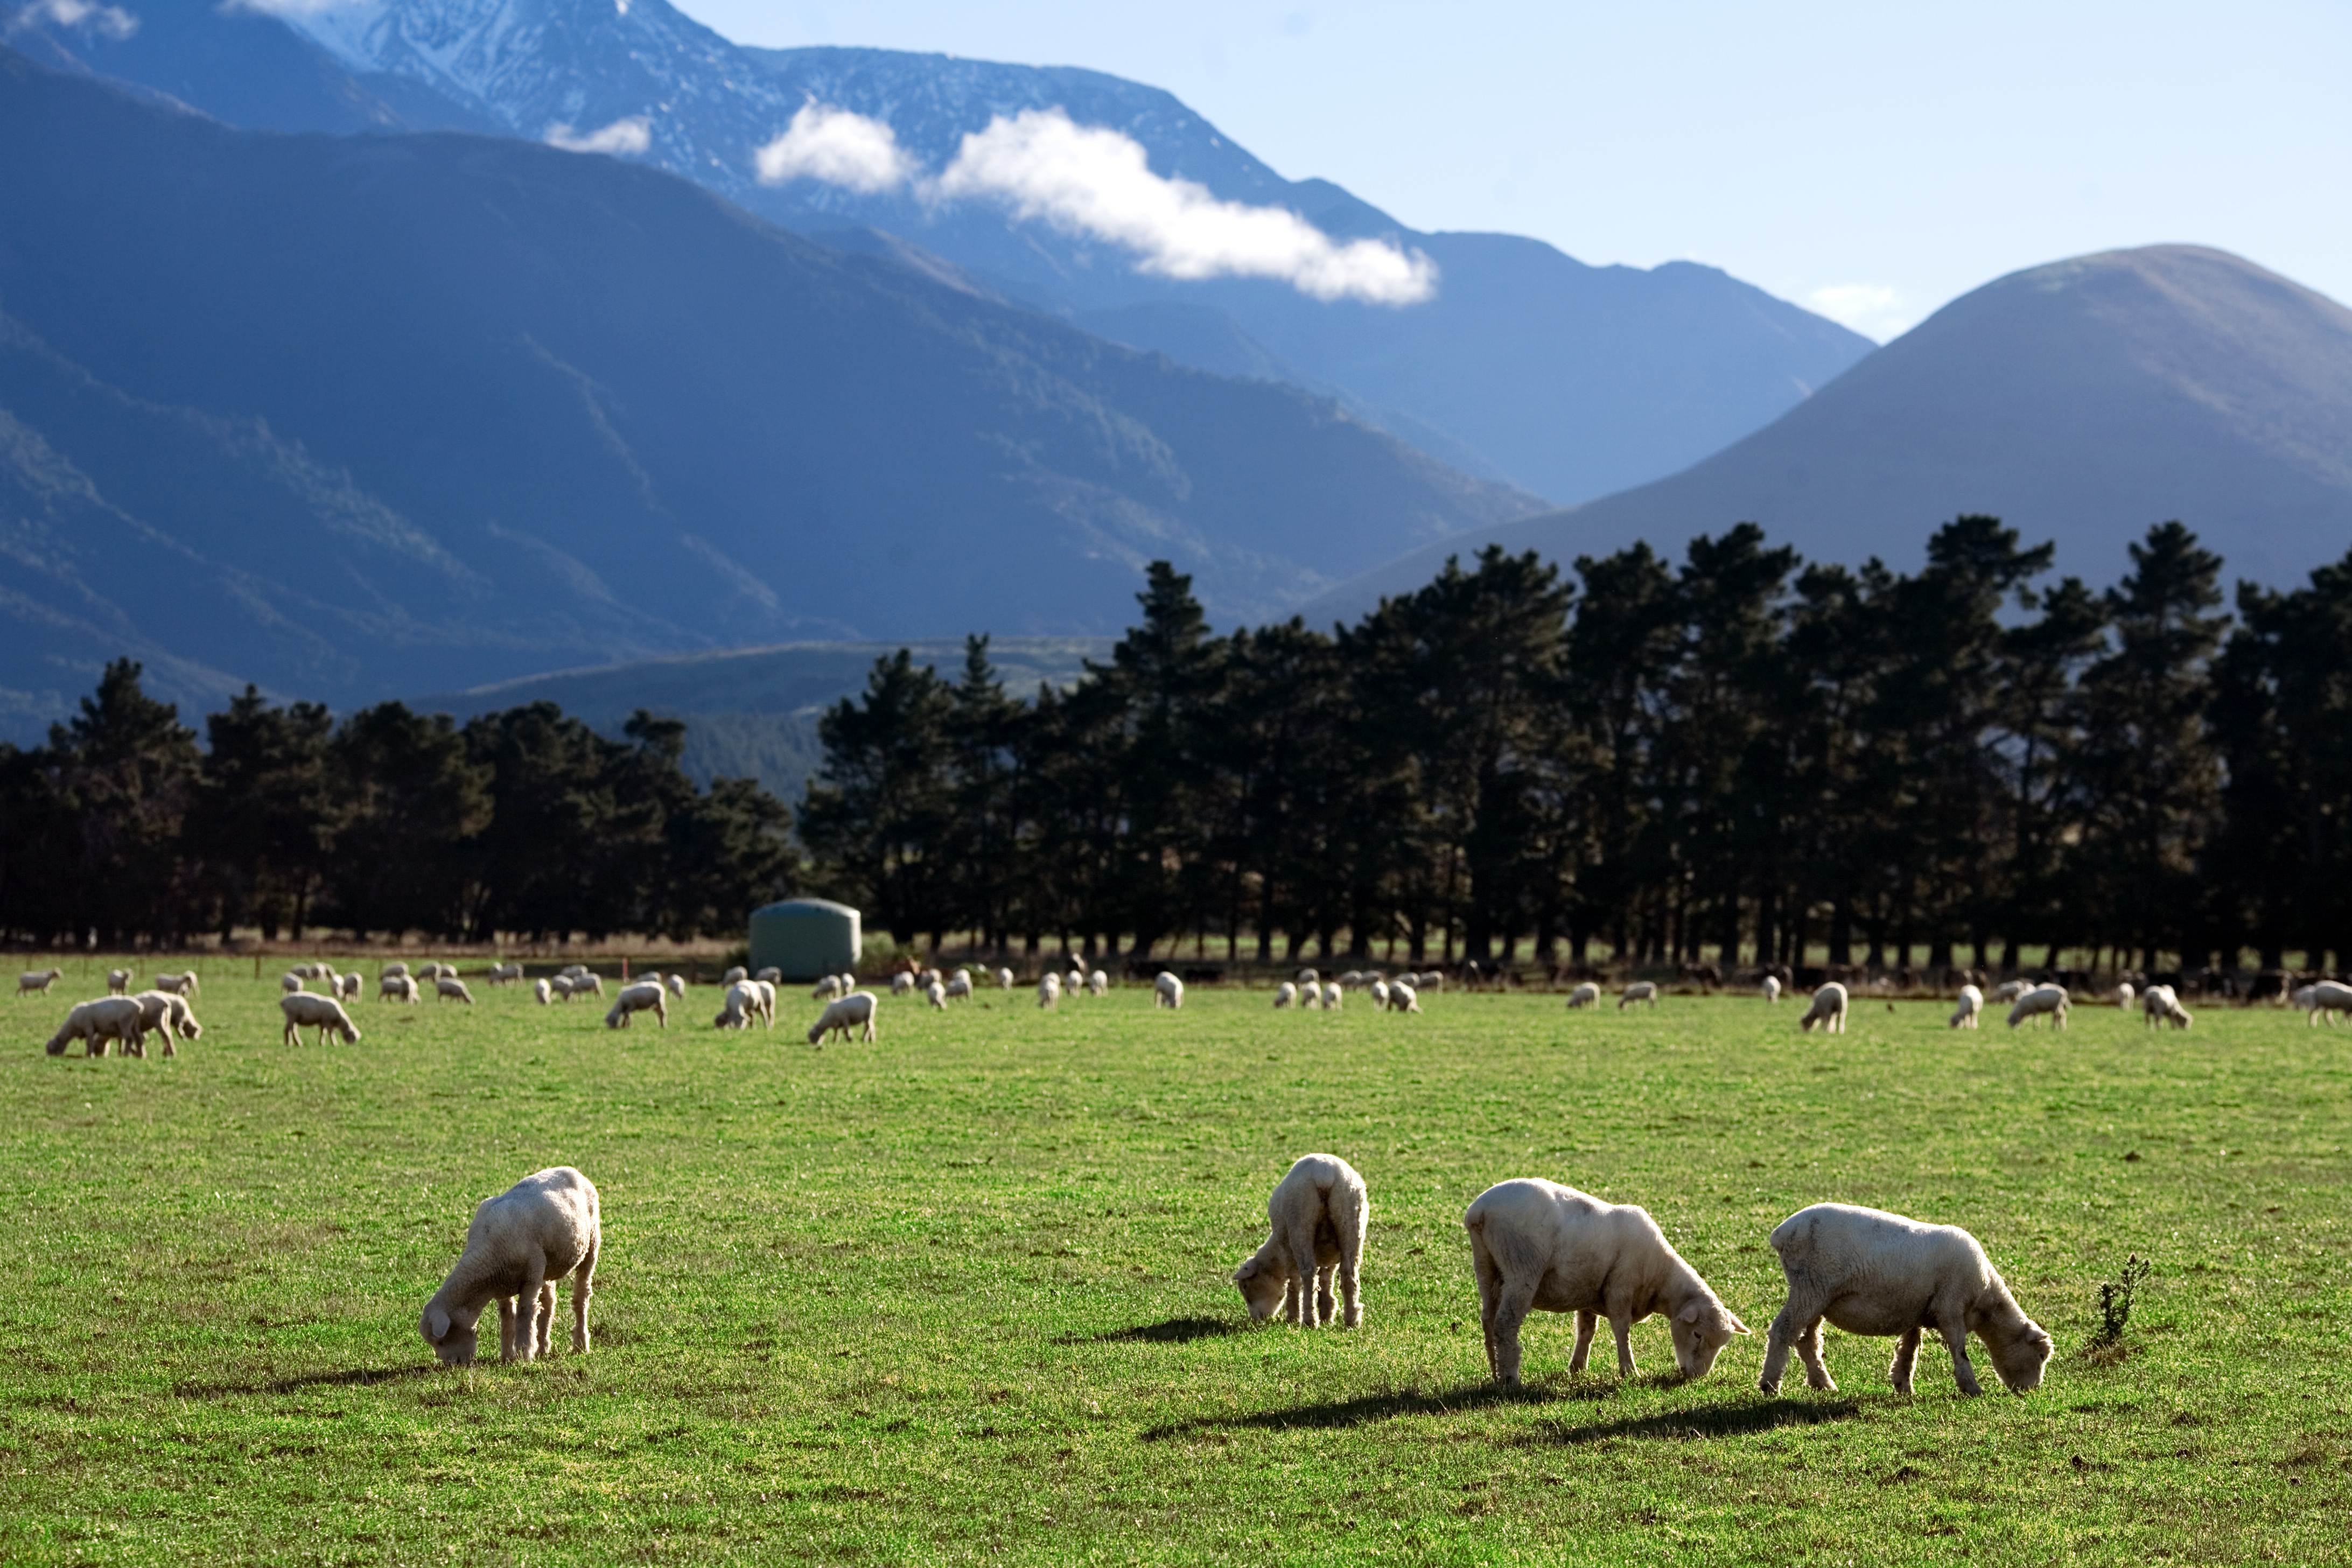 File:New Zealand - Rural